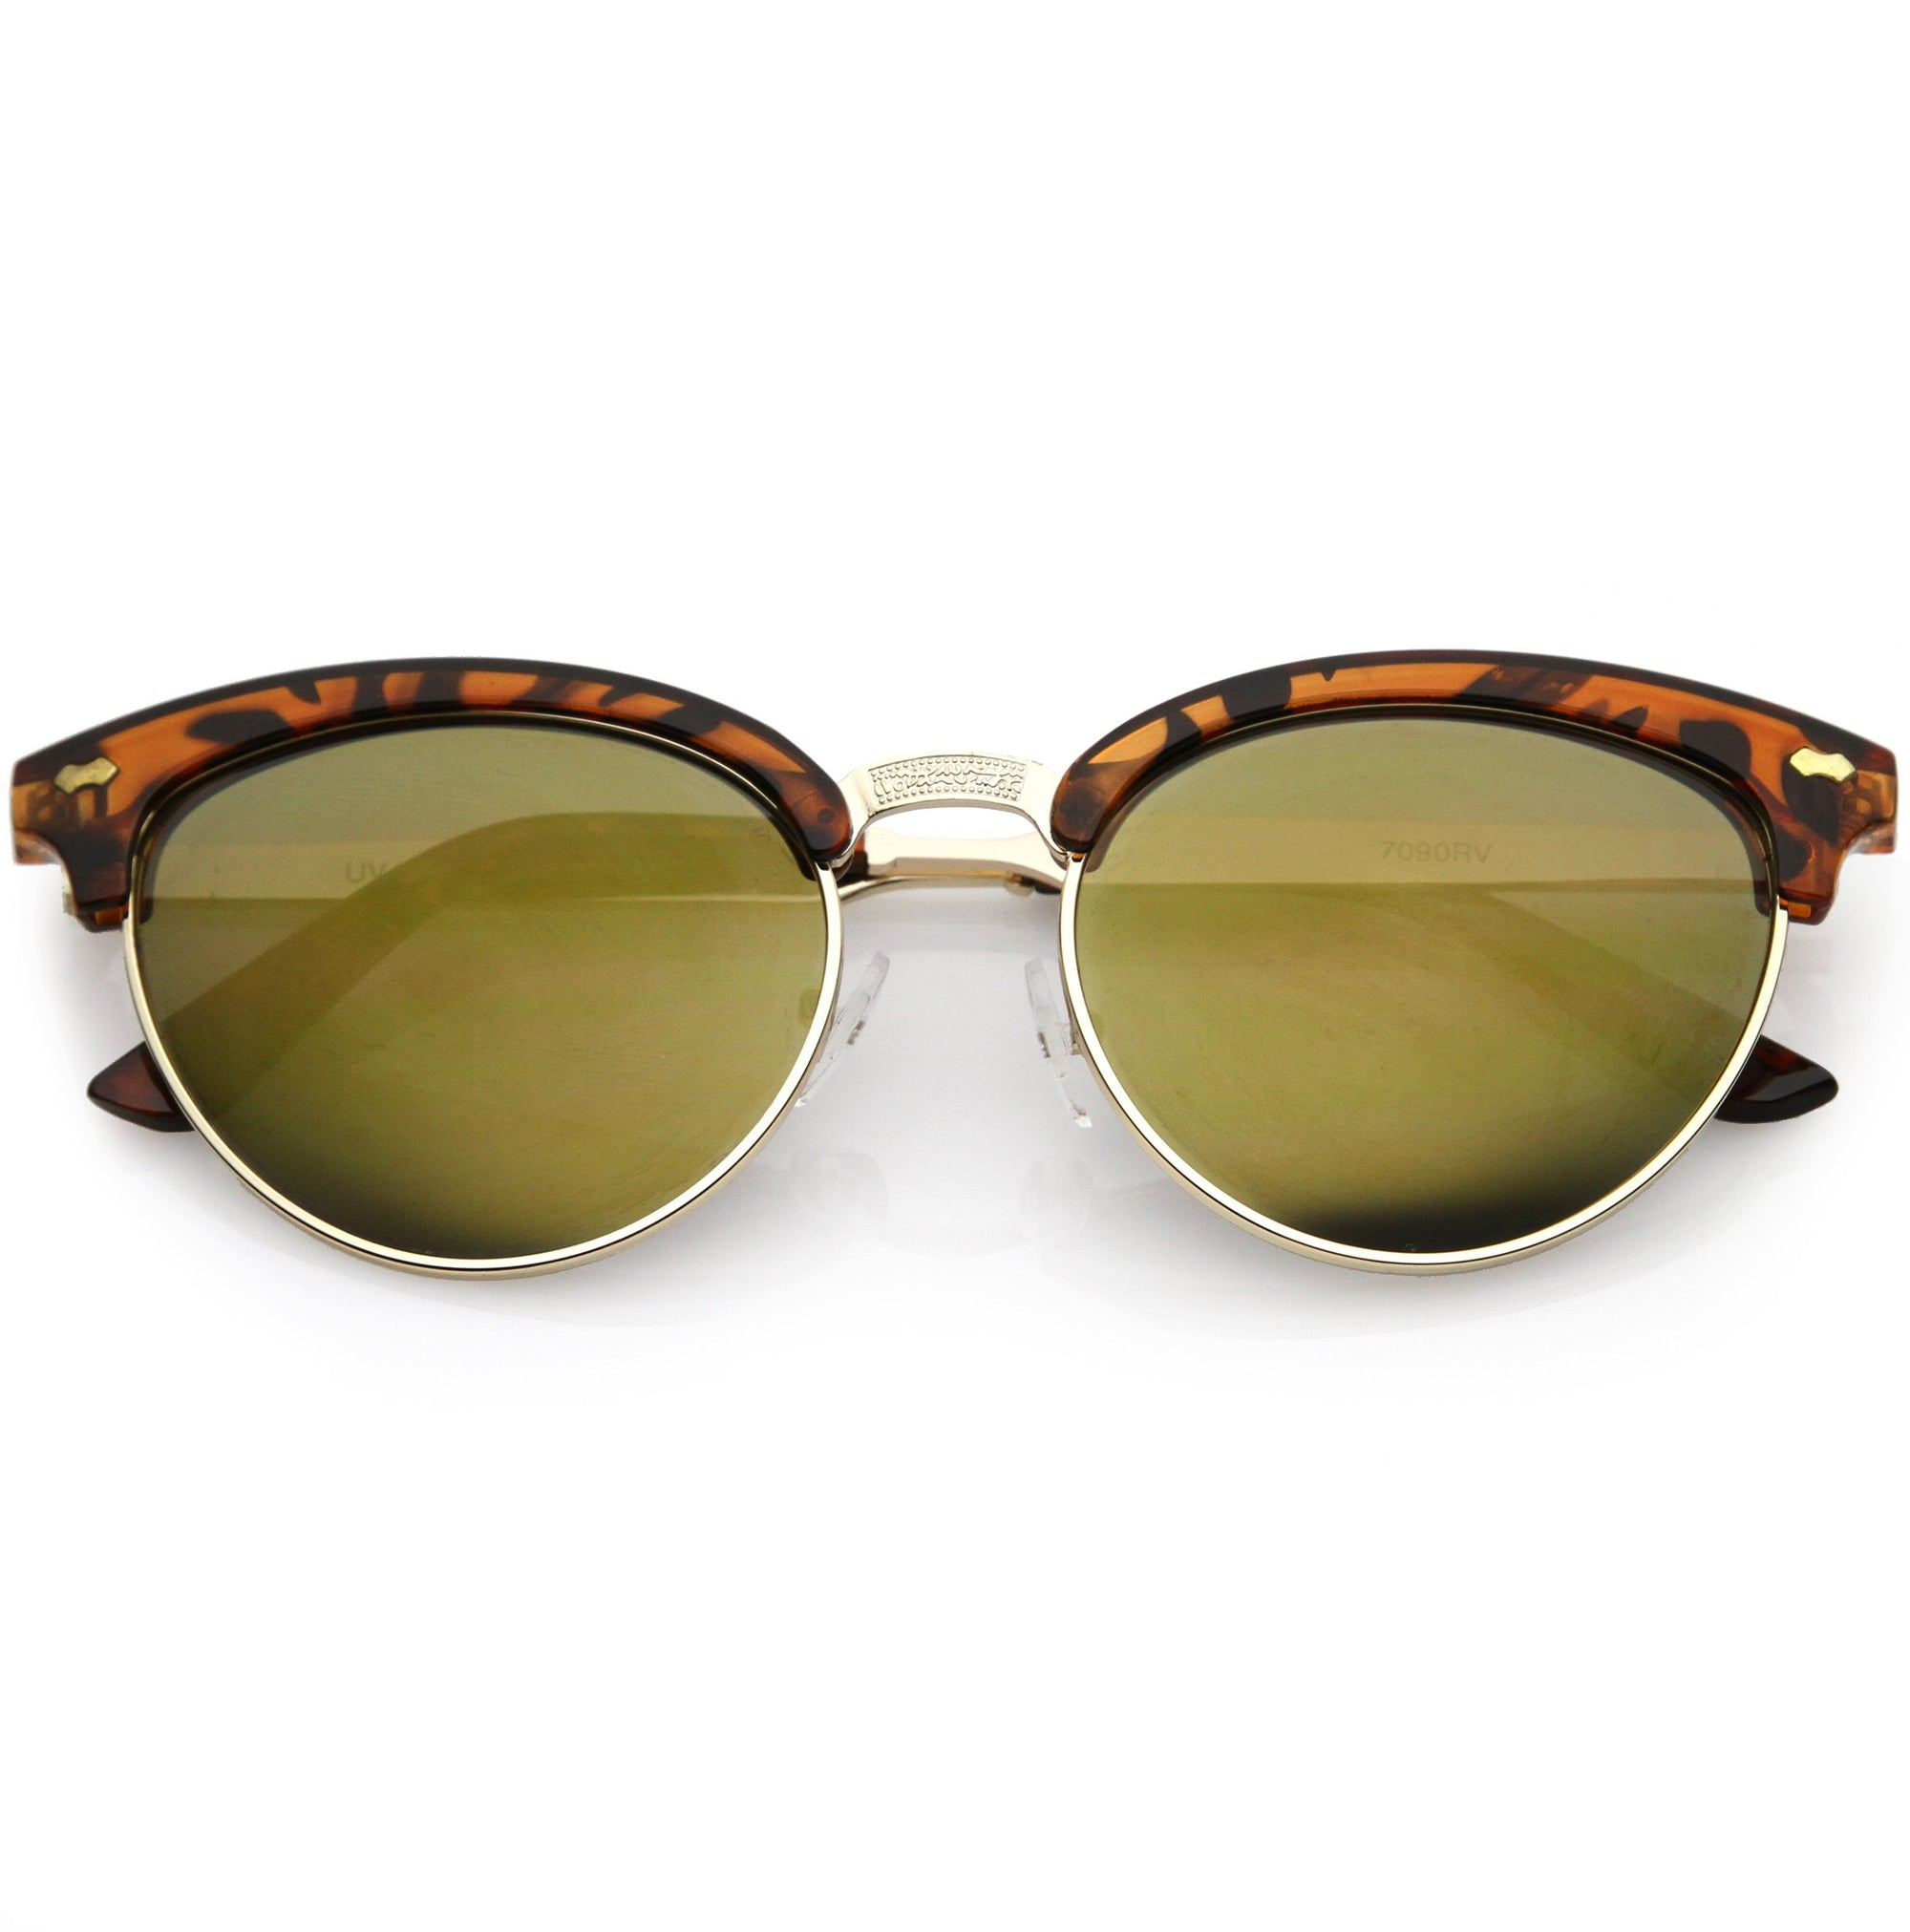 72b547ba30 Women s Retro Half Frame Horned Rim Mirrored Lens Sunglasses - zeroUV